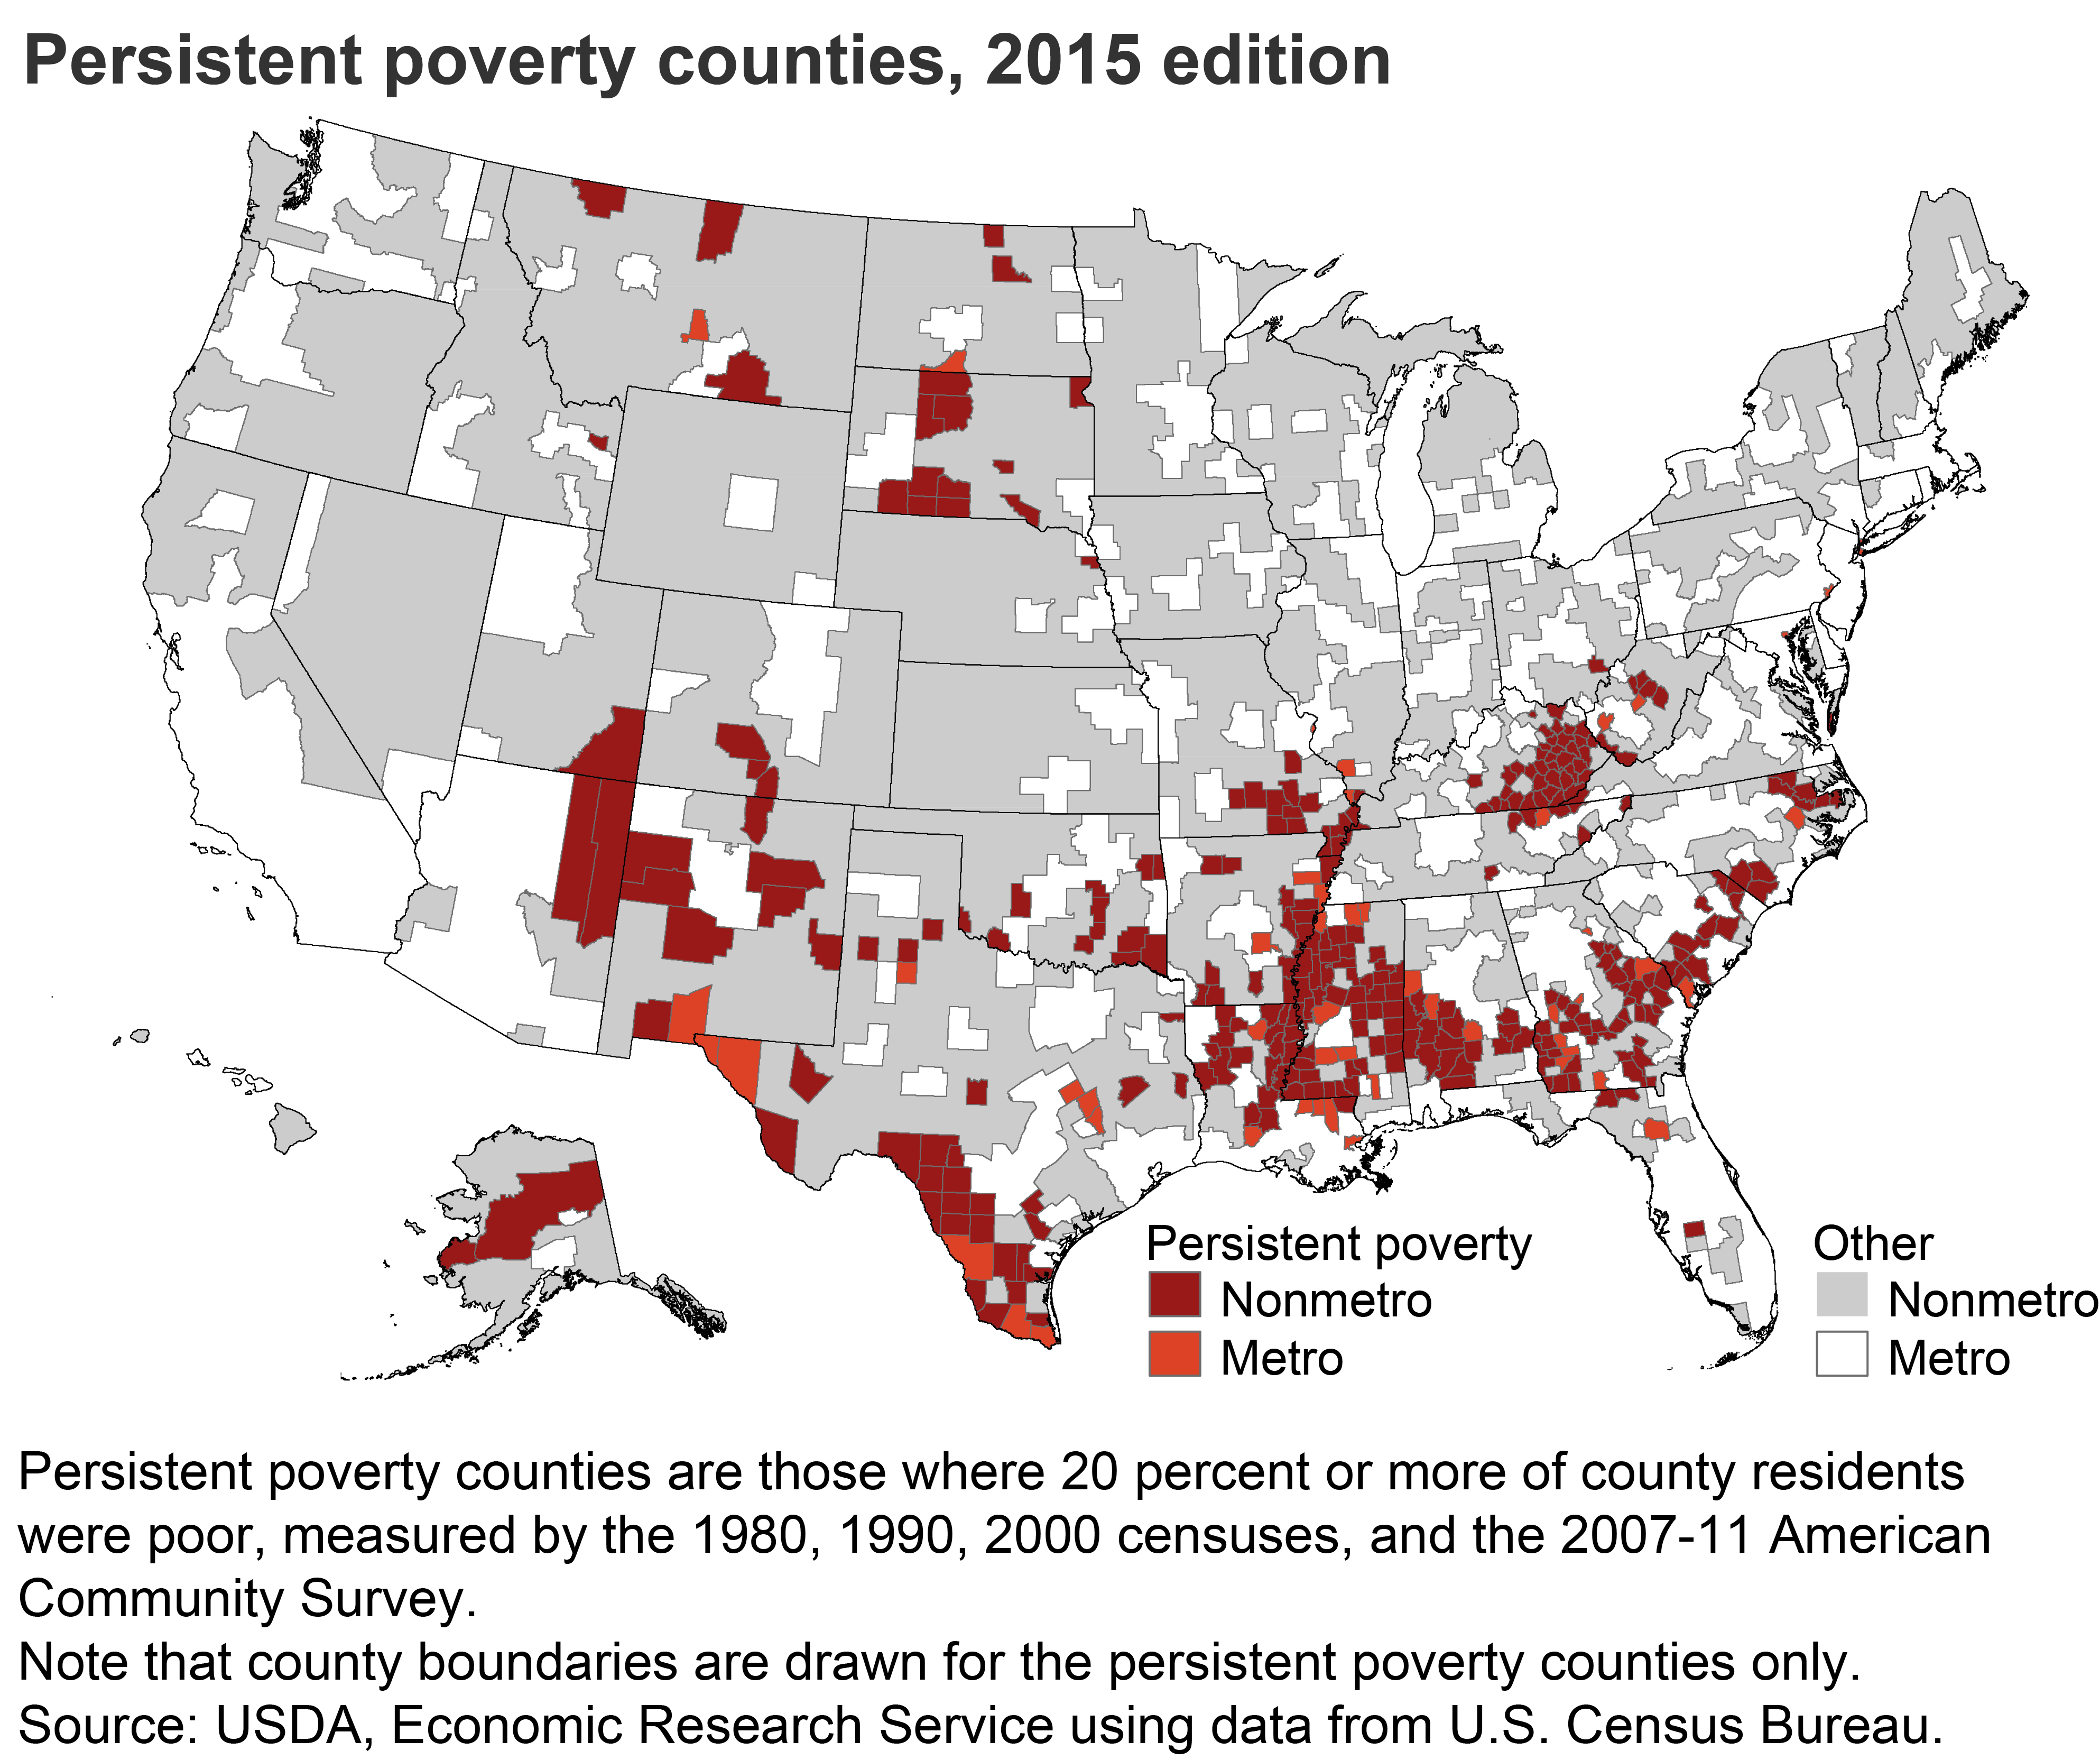 USDA ERS - Rural Poverty & Well-being